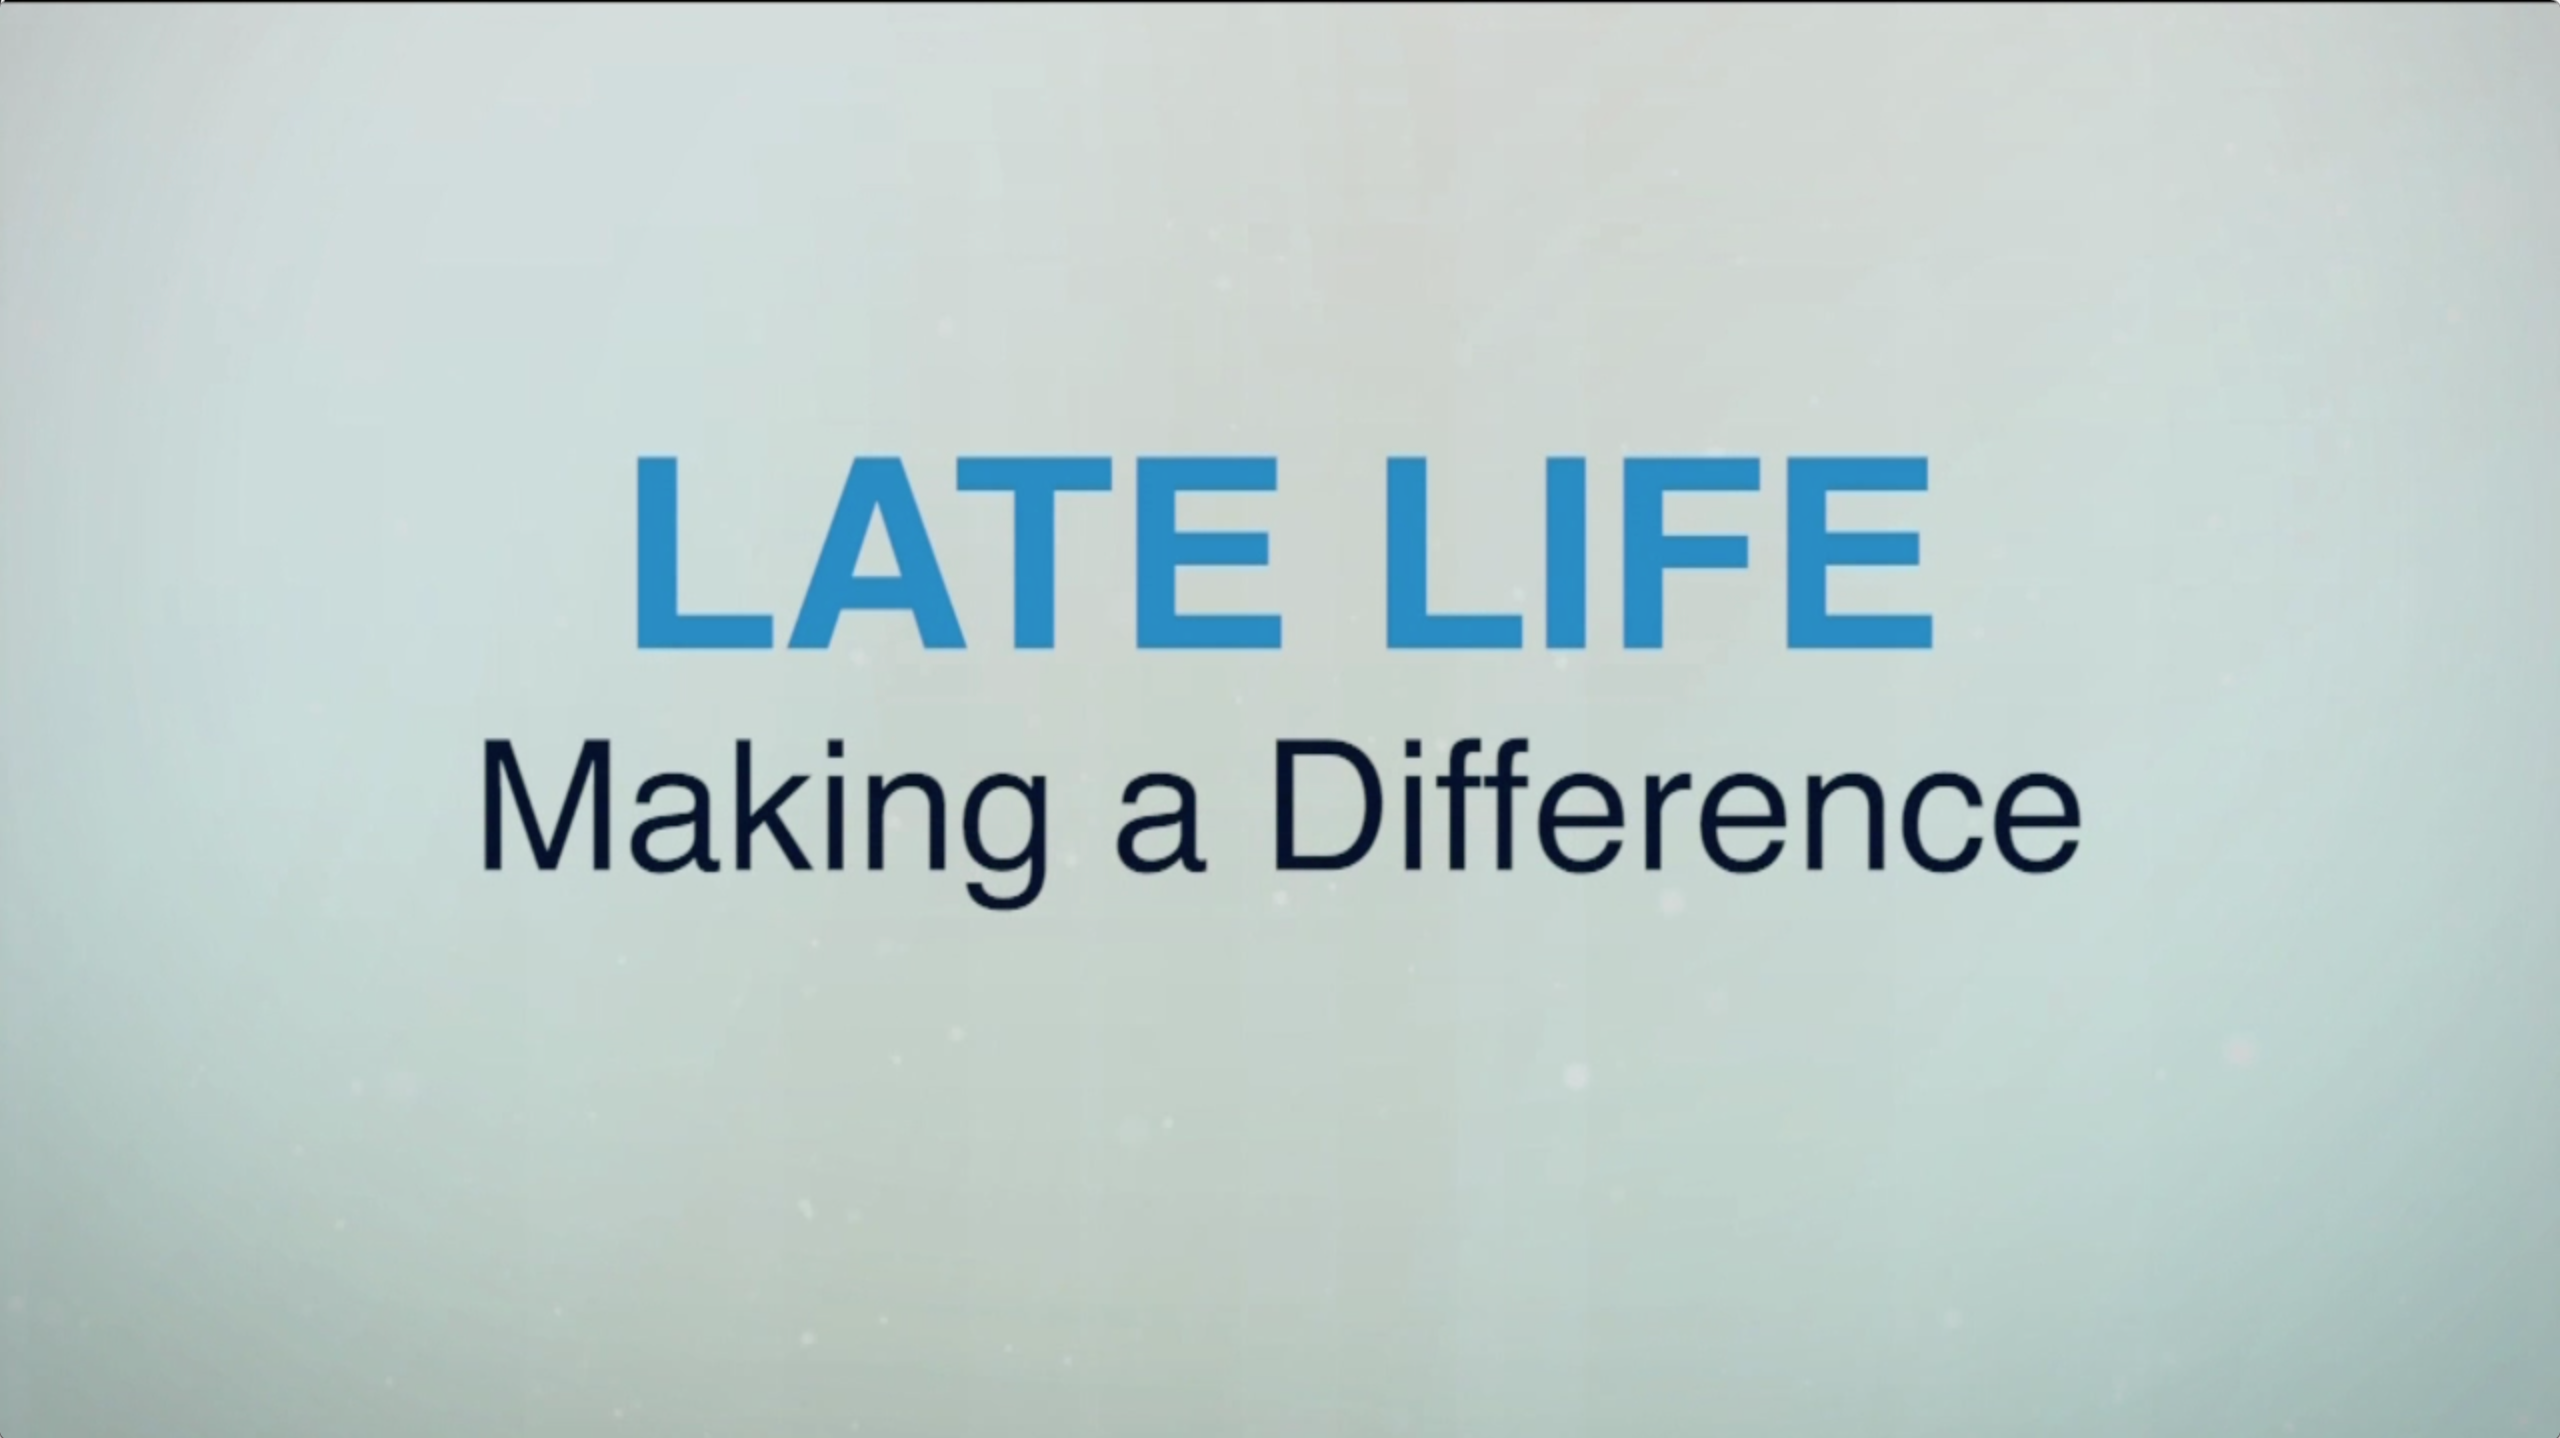 Late Life: Making a Difference